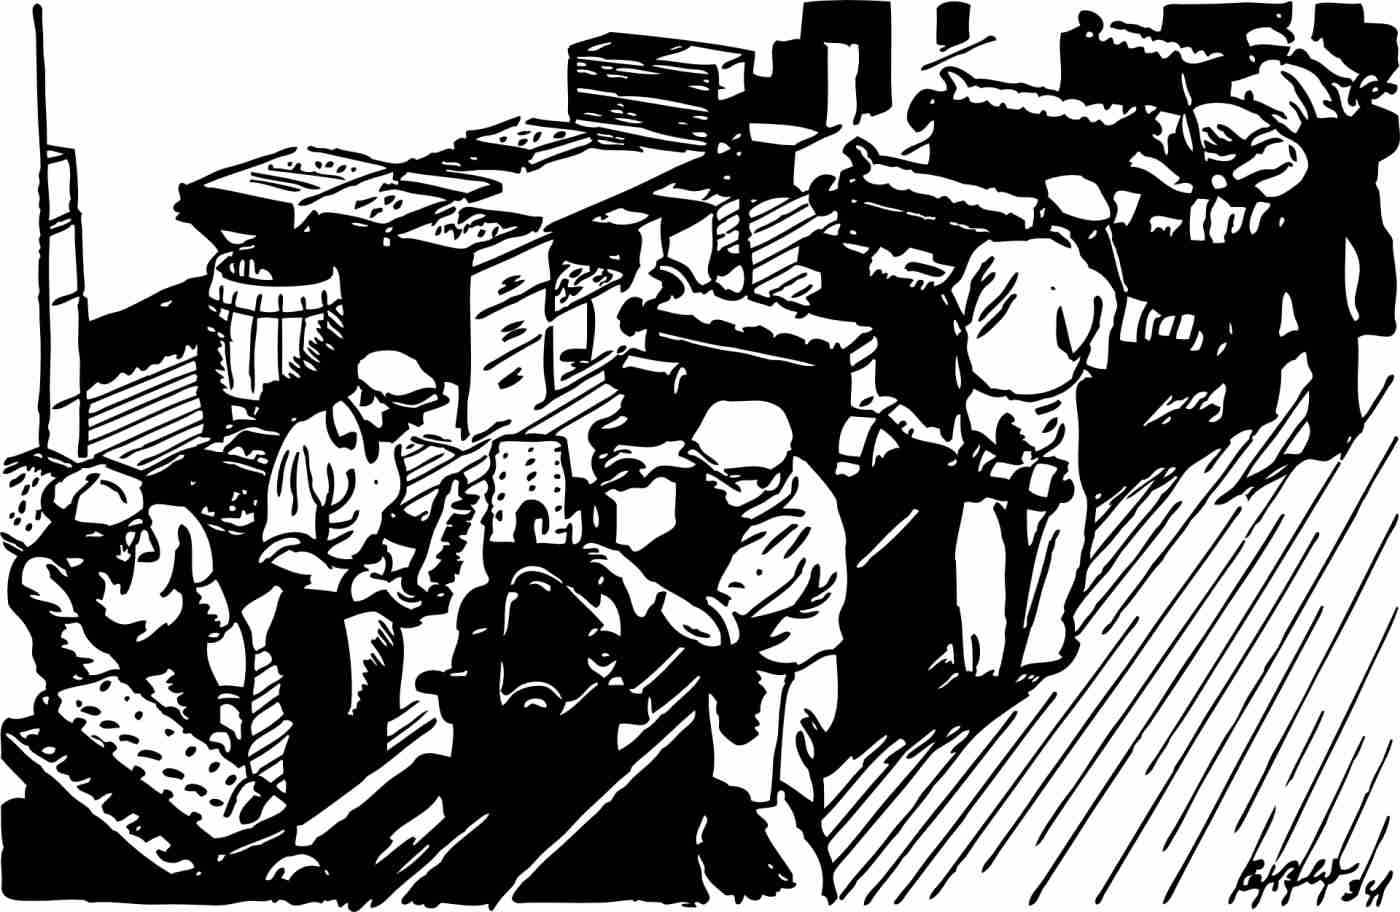 drawing: factory workers on an assembly line